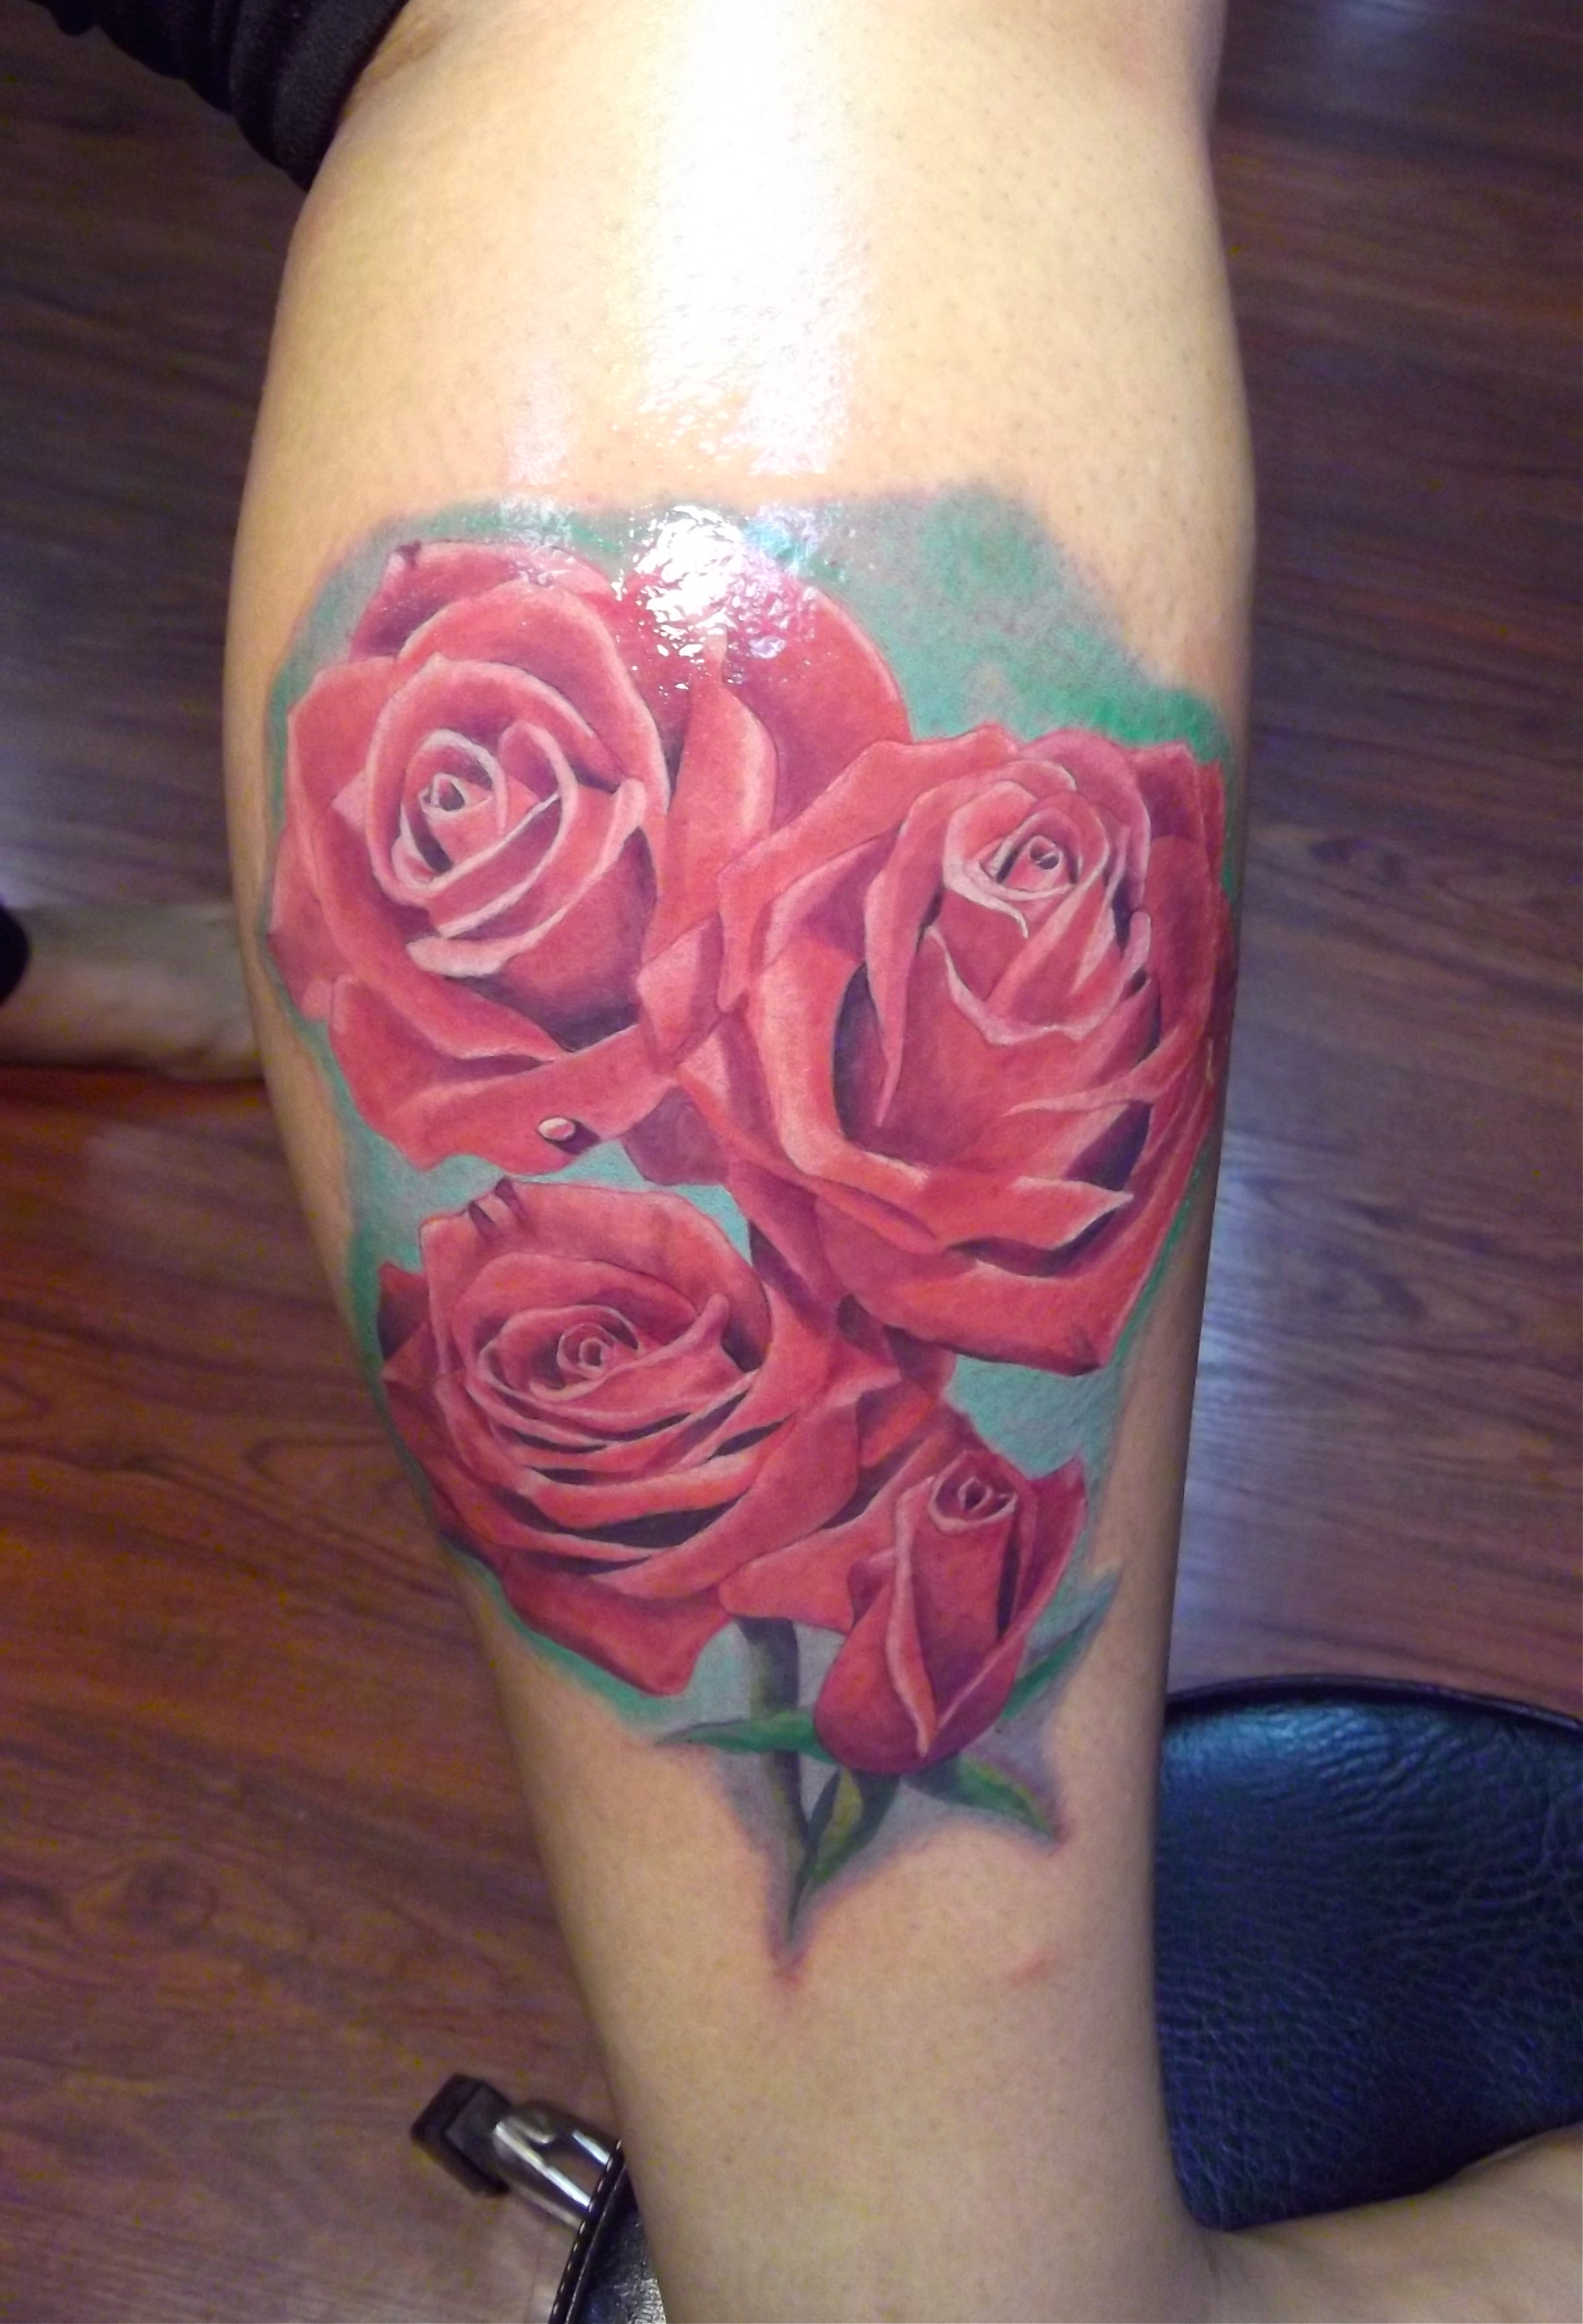 the rose tattoo research paper